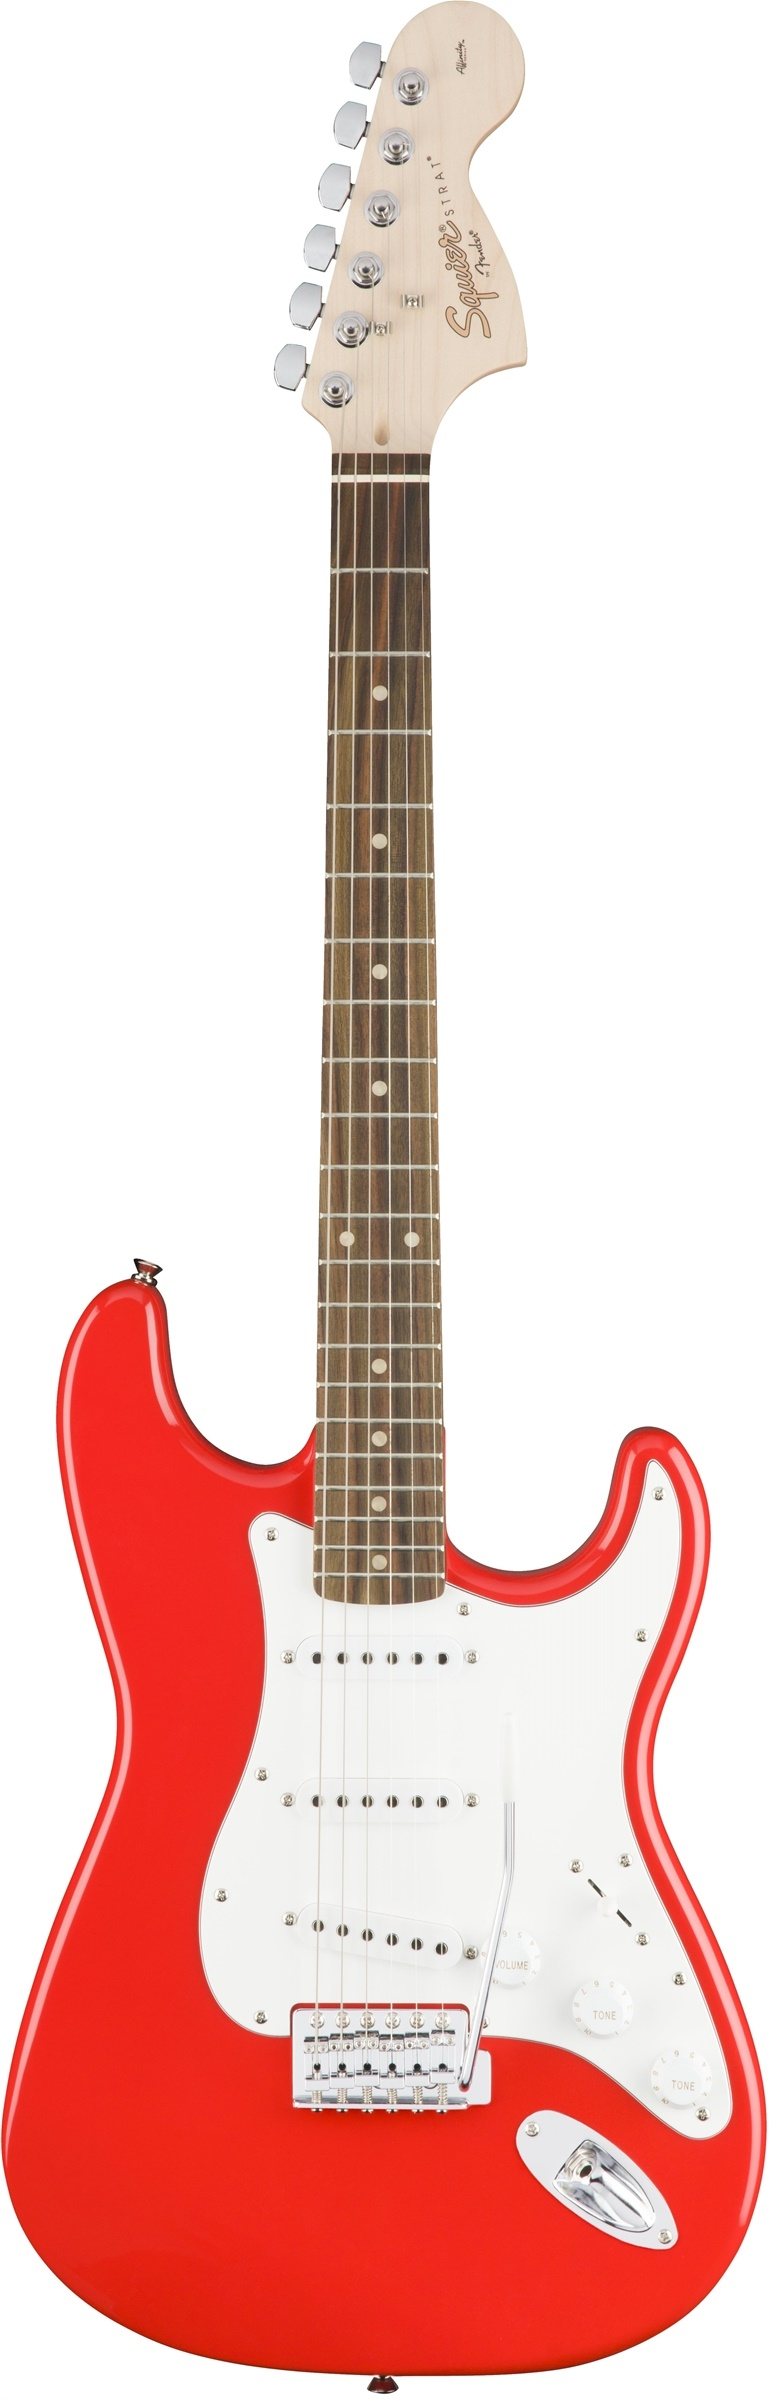 Squier Affinity Series Stratocaster - Race Red - Rosewood Fretboard